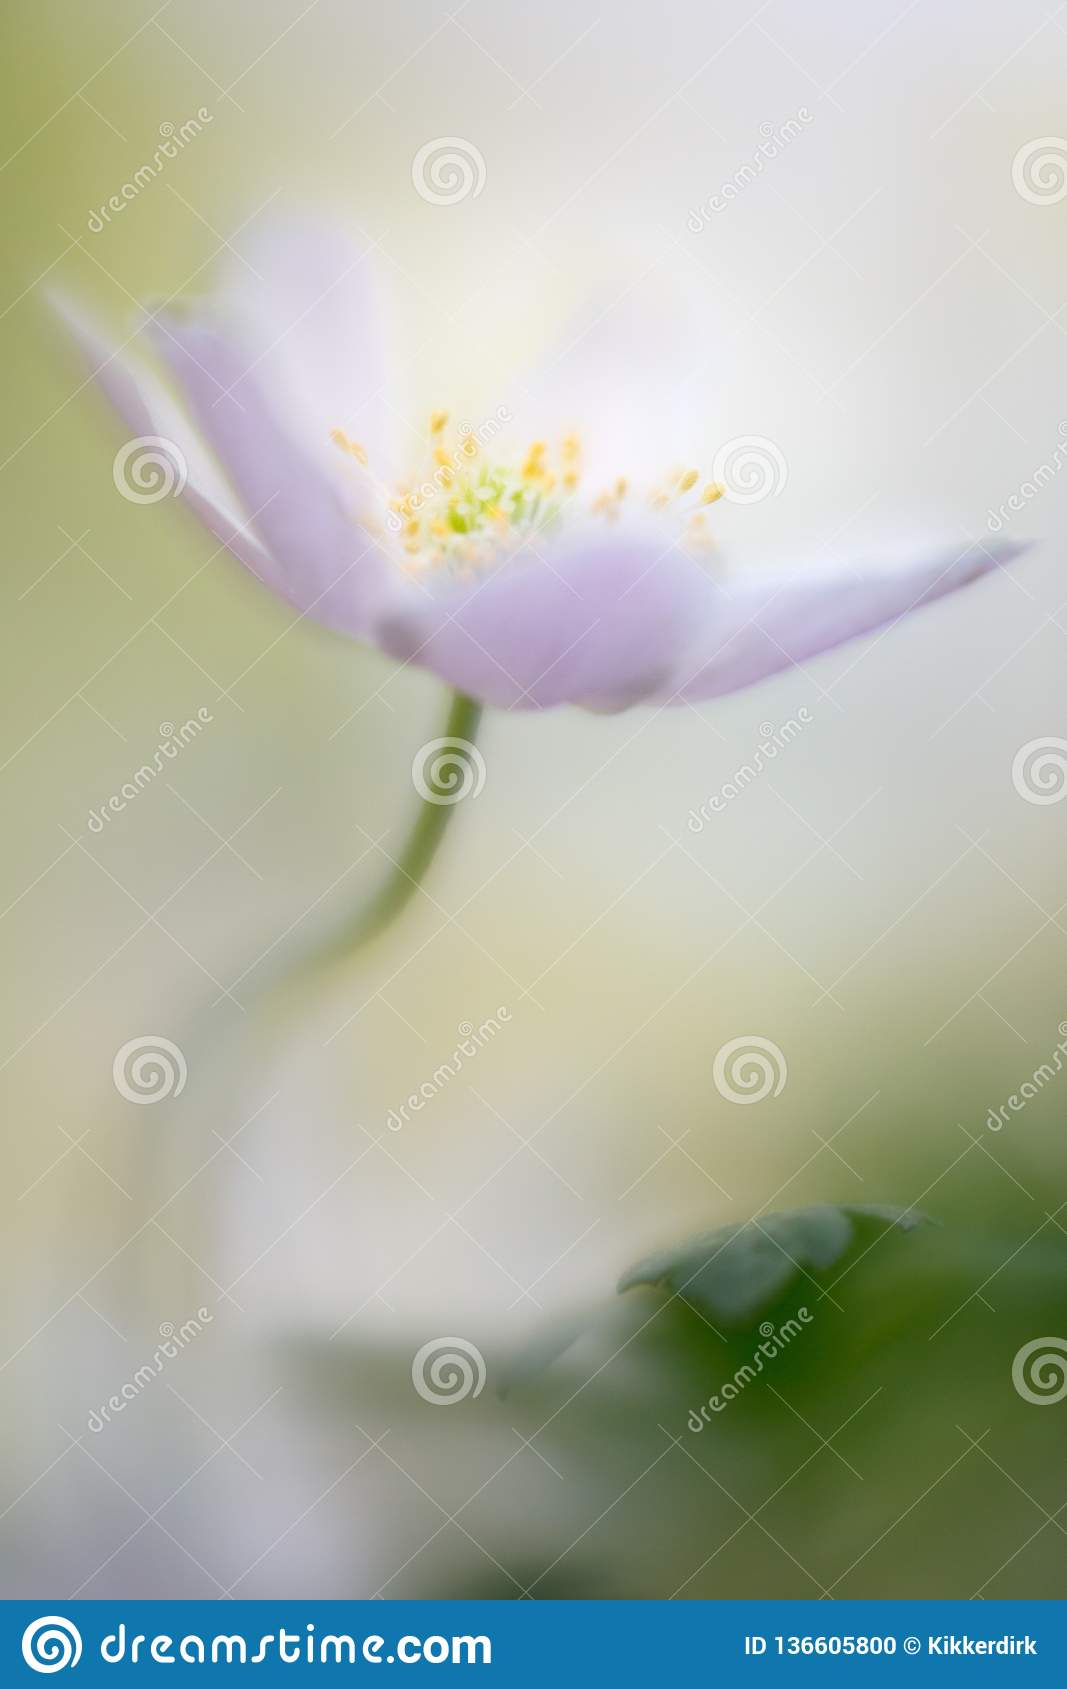 Wood anemone a delicate spring wild flower